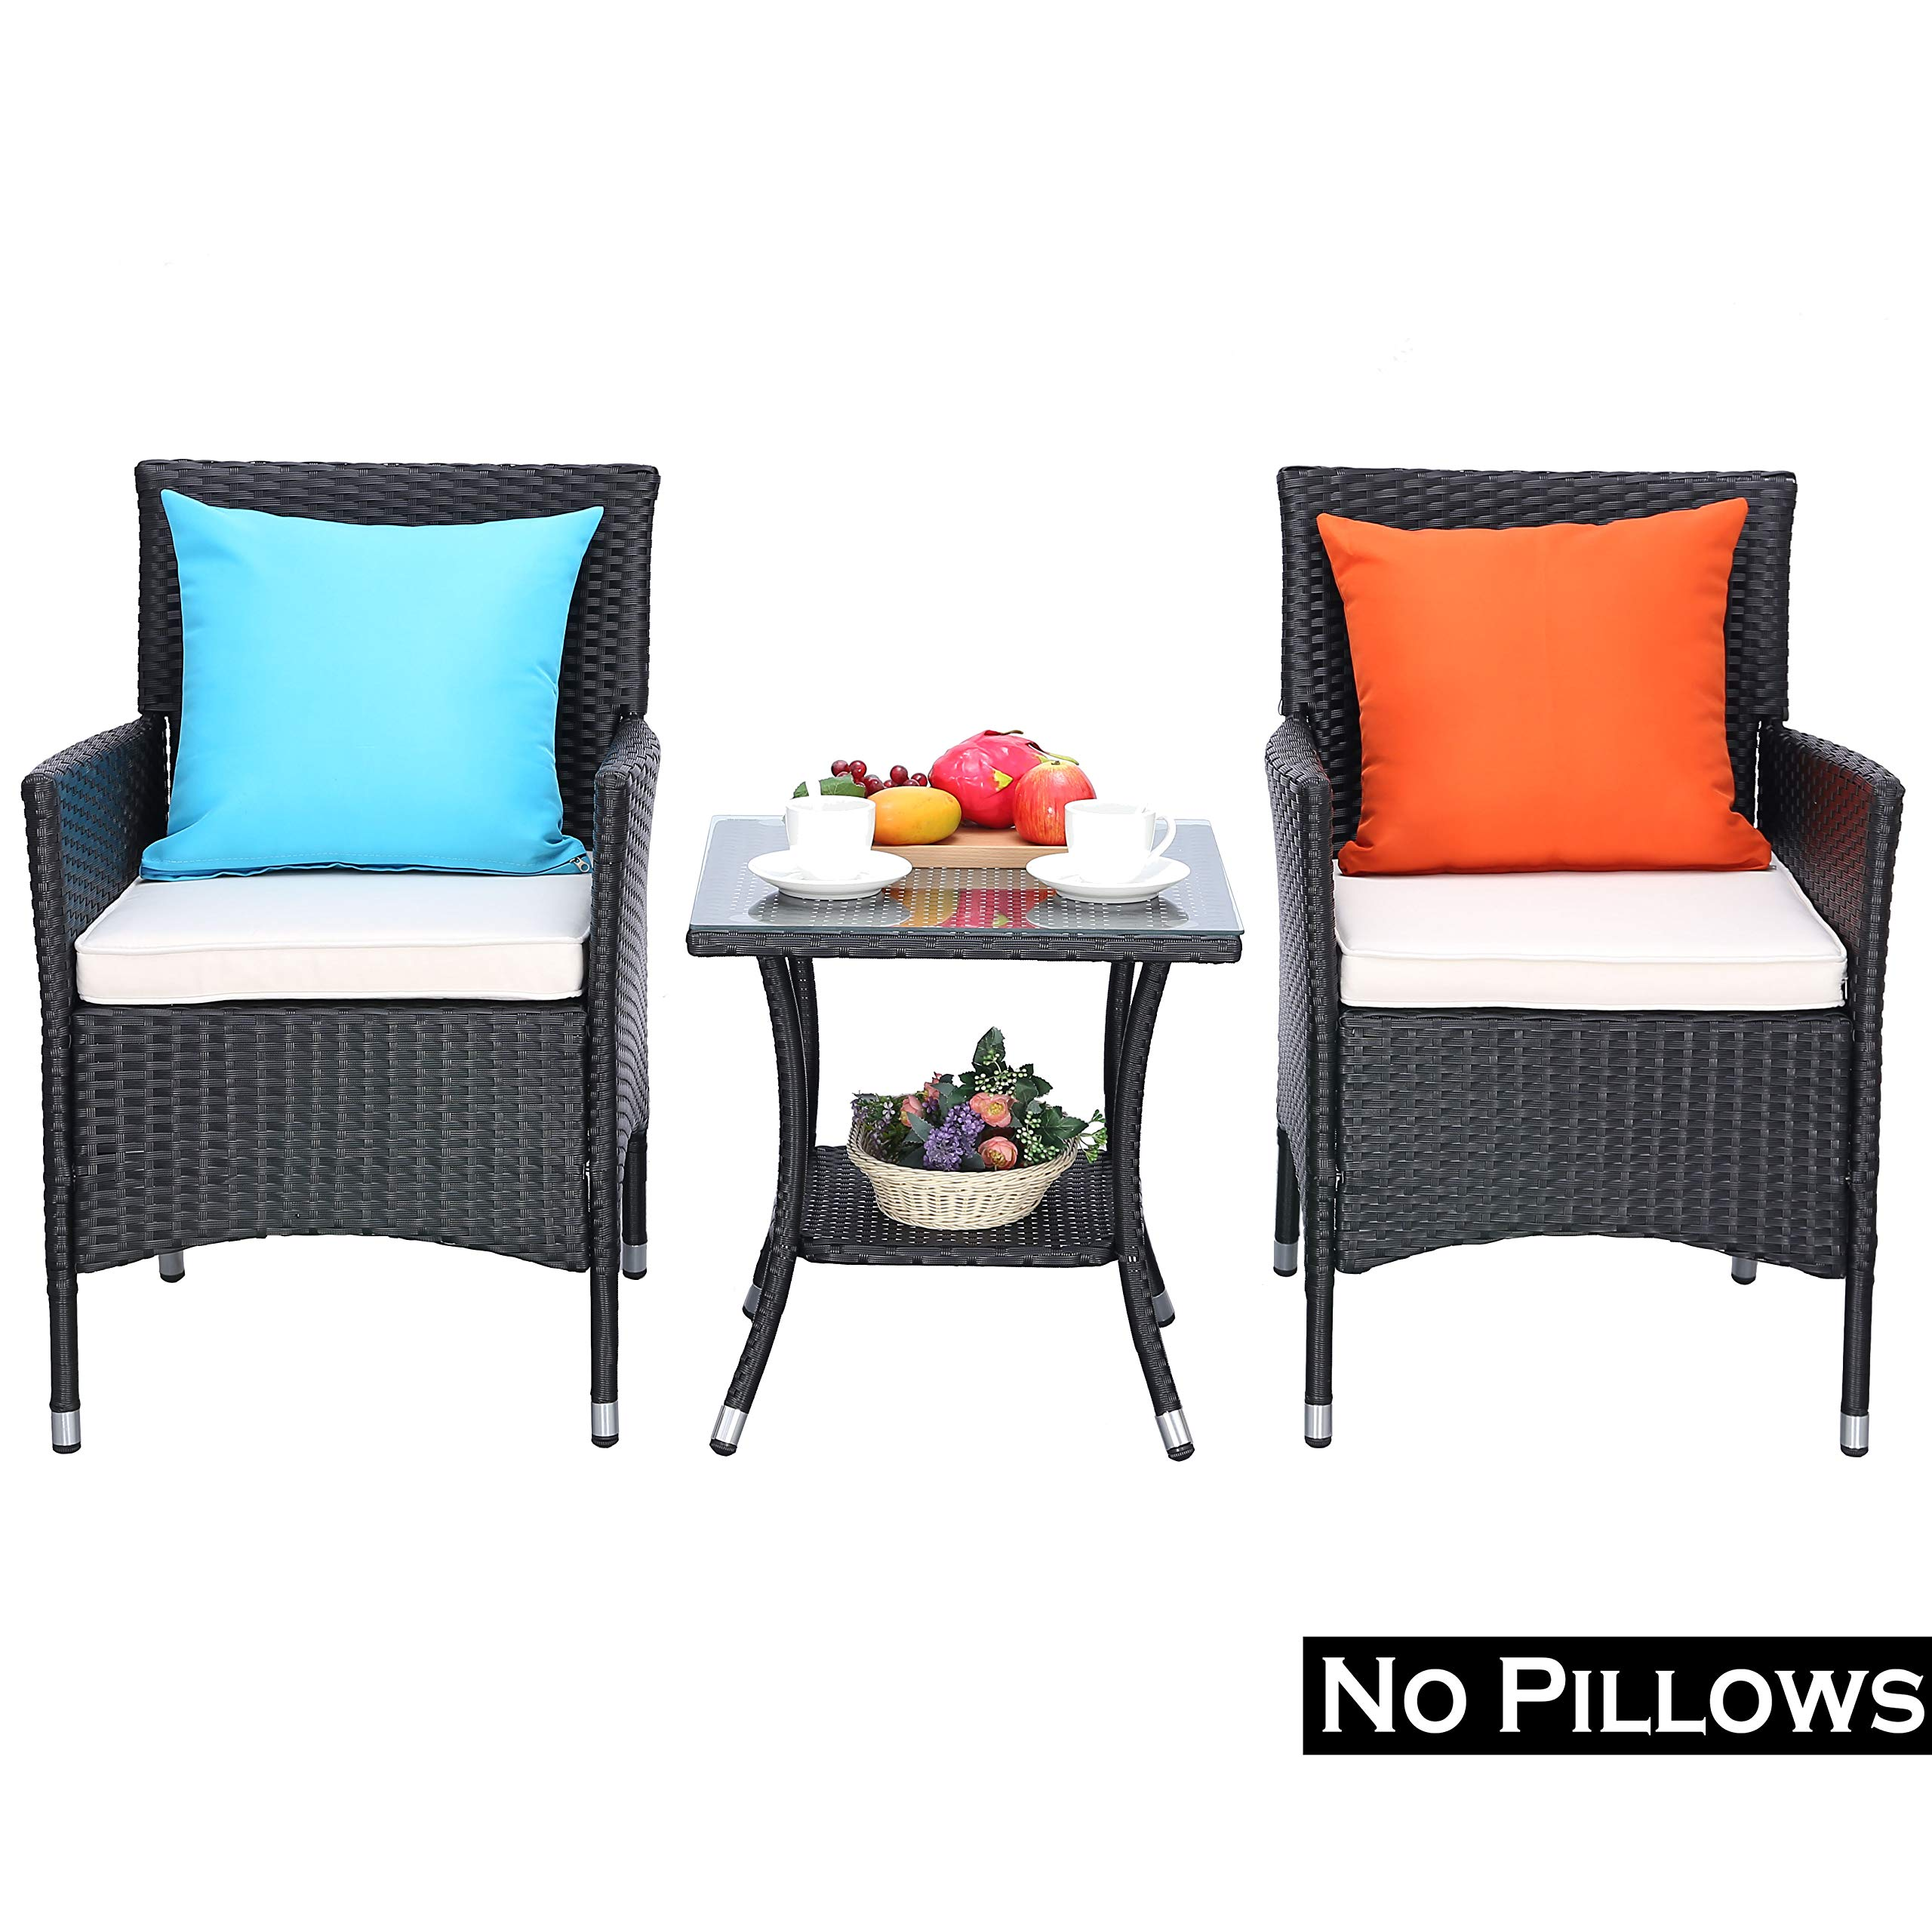 Do4U 3 Pieces Patio Furniture Set Outdoor Wicker Conversation Set Cushioned PE Wicker Bistro Set Rattan Chairs with Coffee Table | Porch, Backyard, Pool Garden | Dining Chairs (961-BLK-BEG) by Do4U (Image #2)